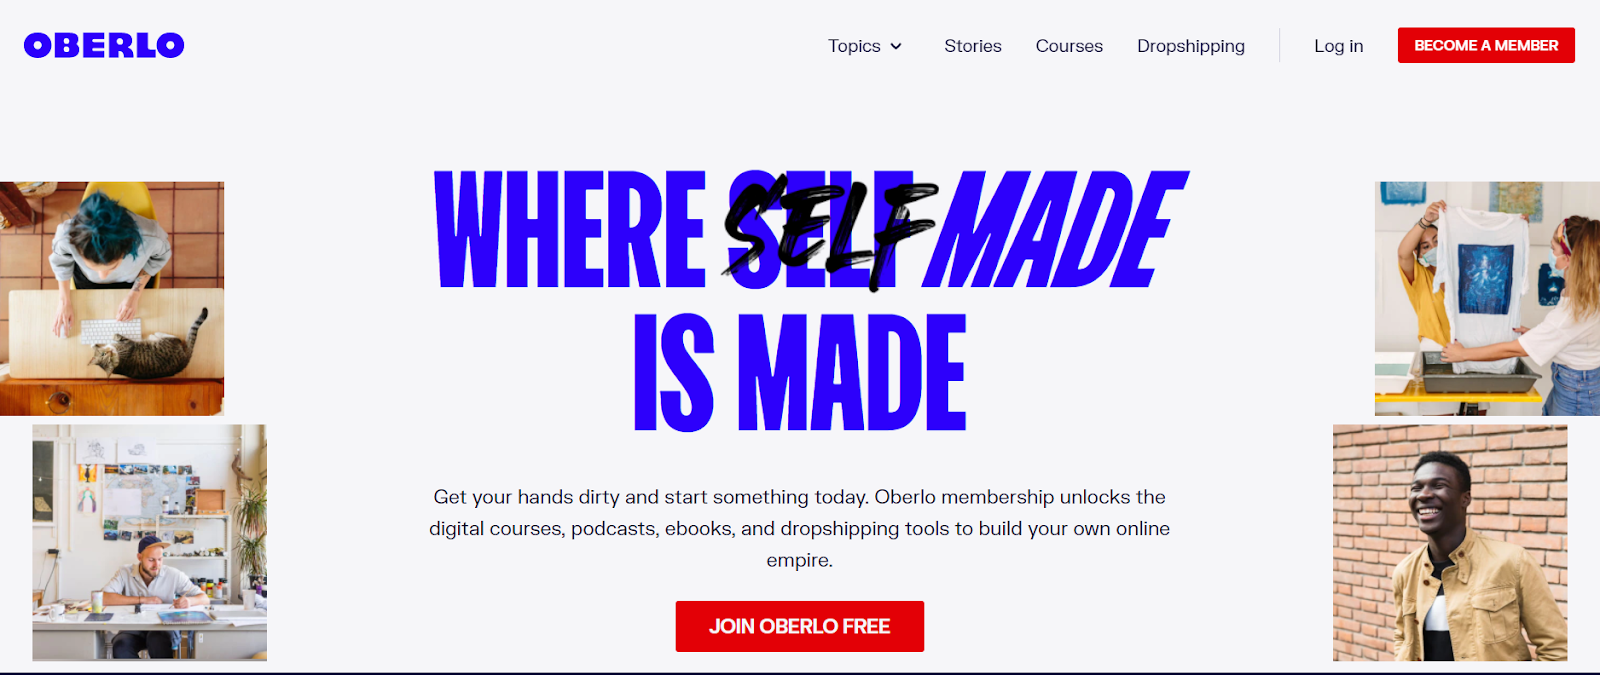 oberlo dropshipping website